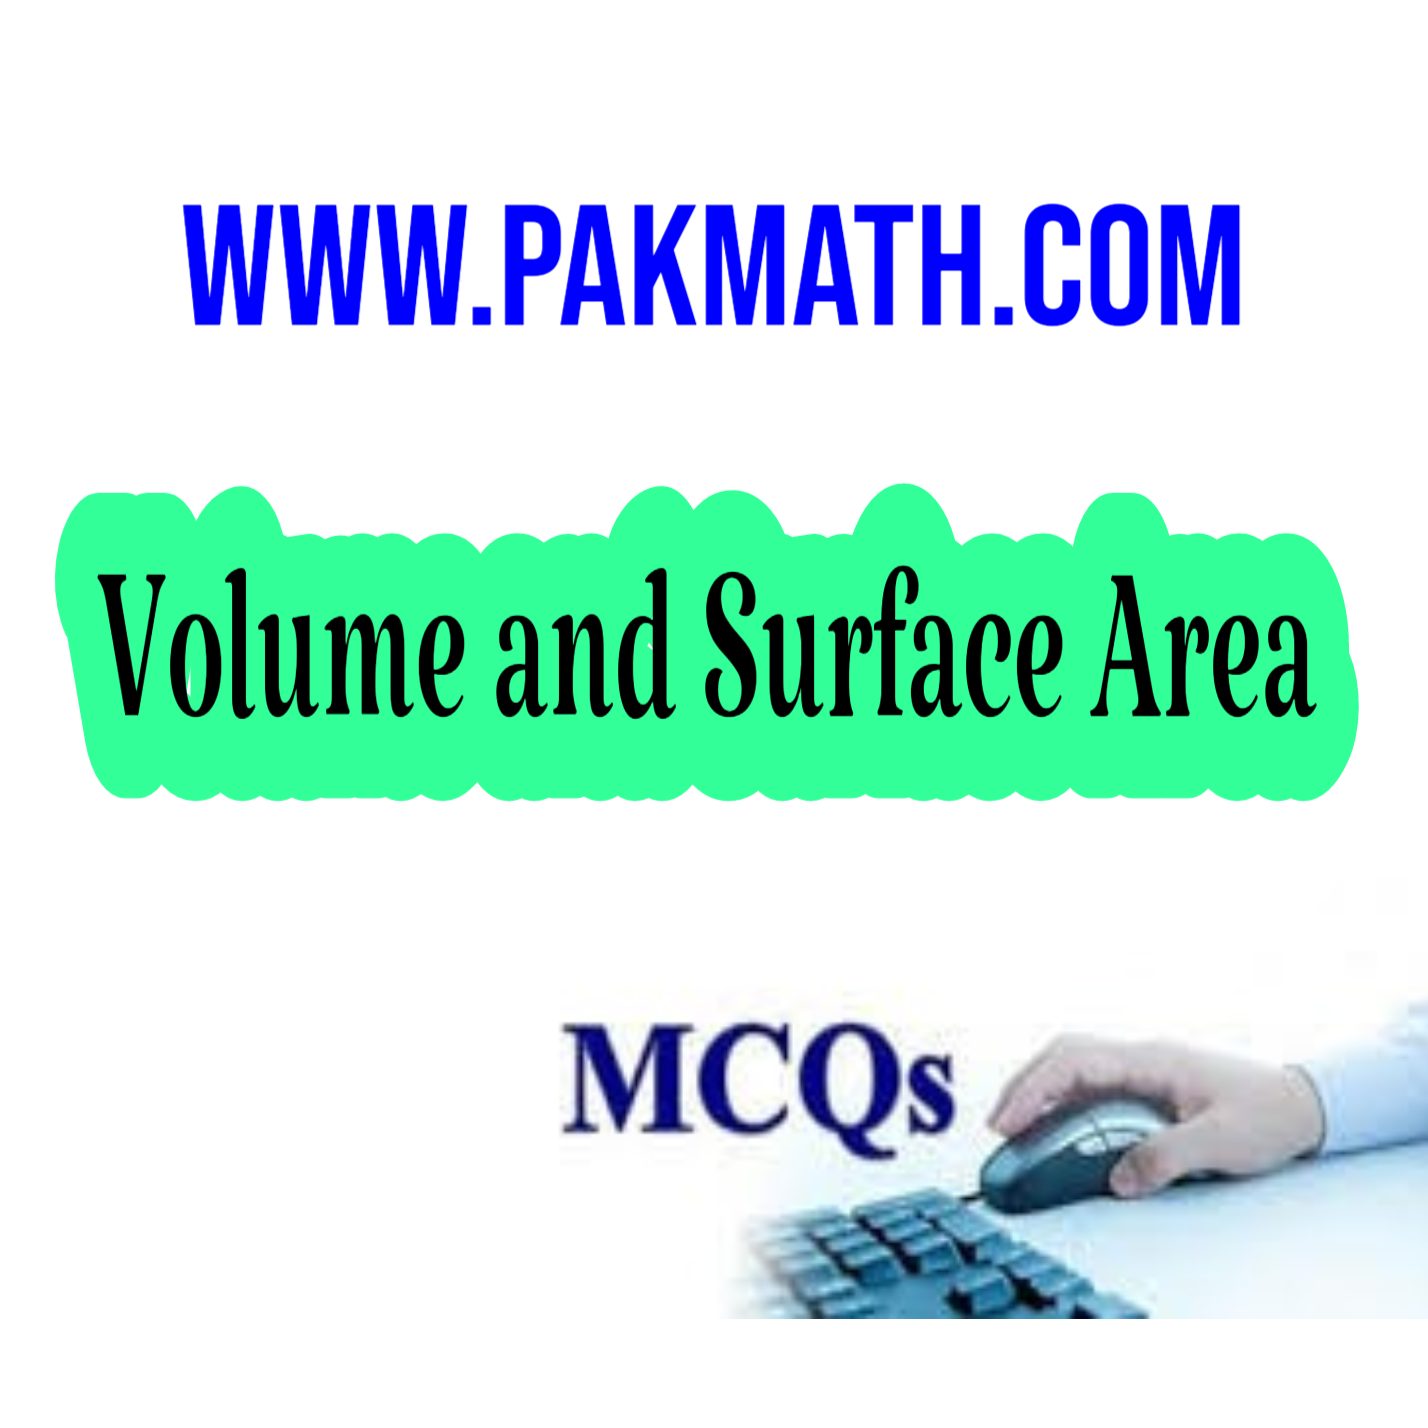 Volume and Surface Area mcqs test 01